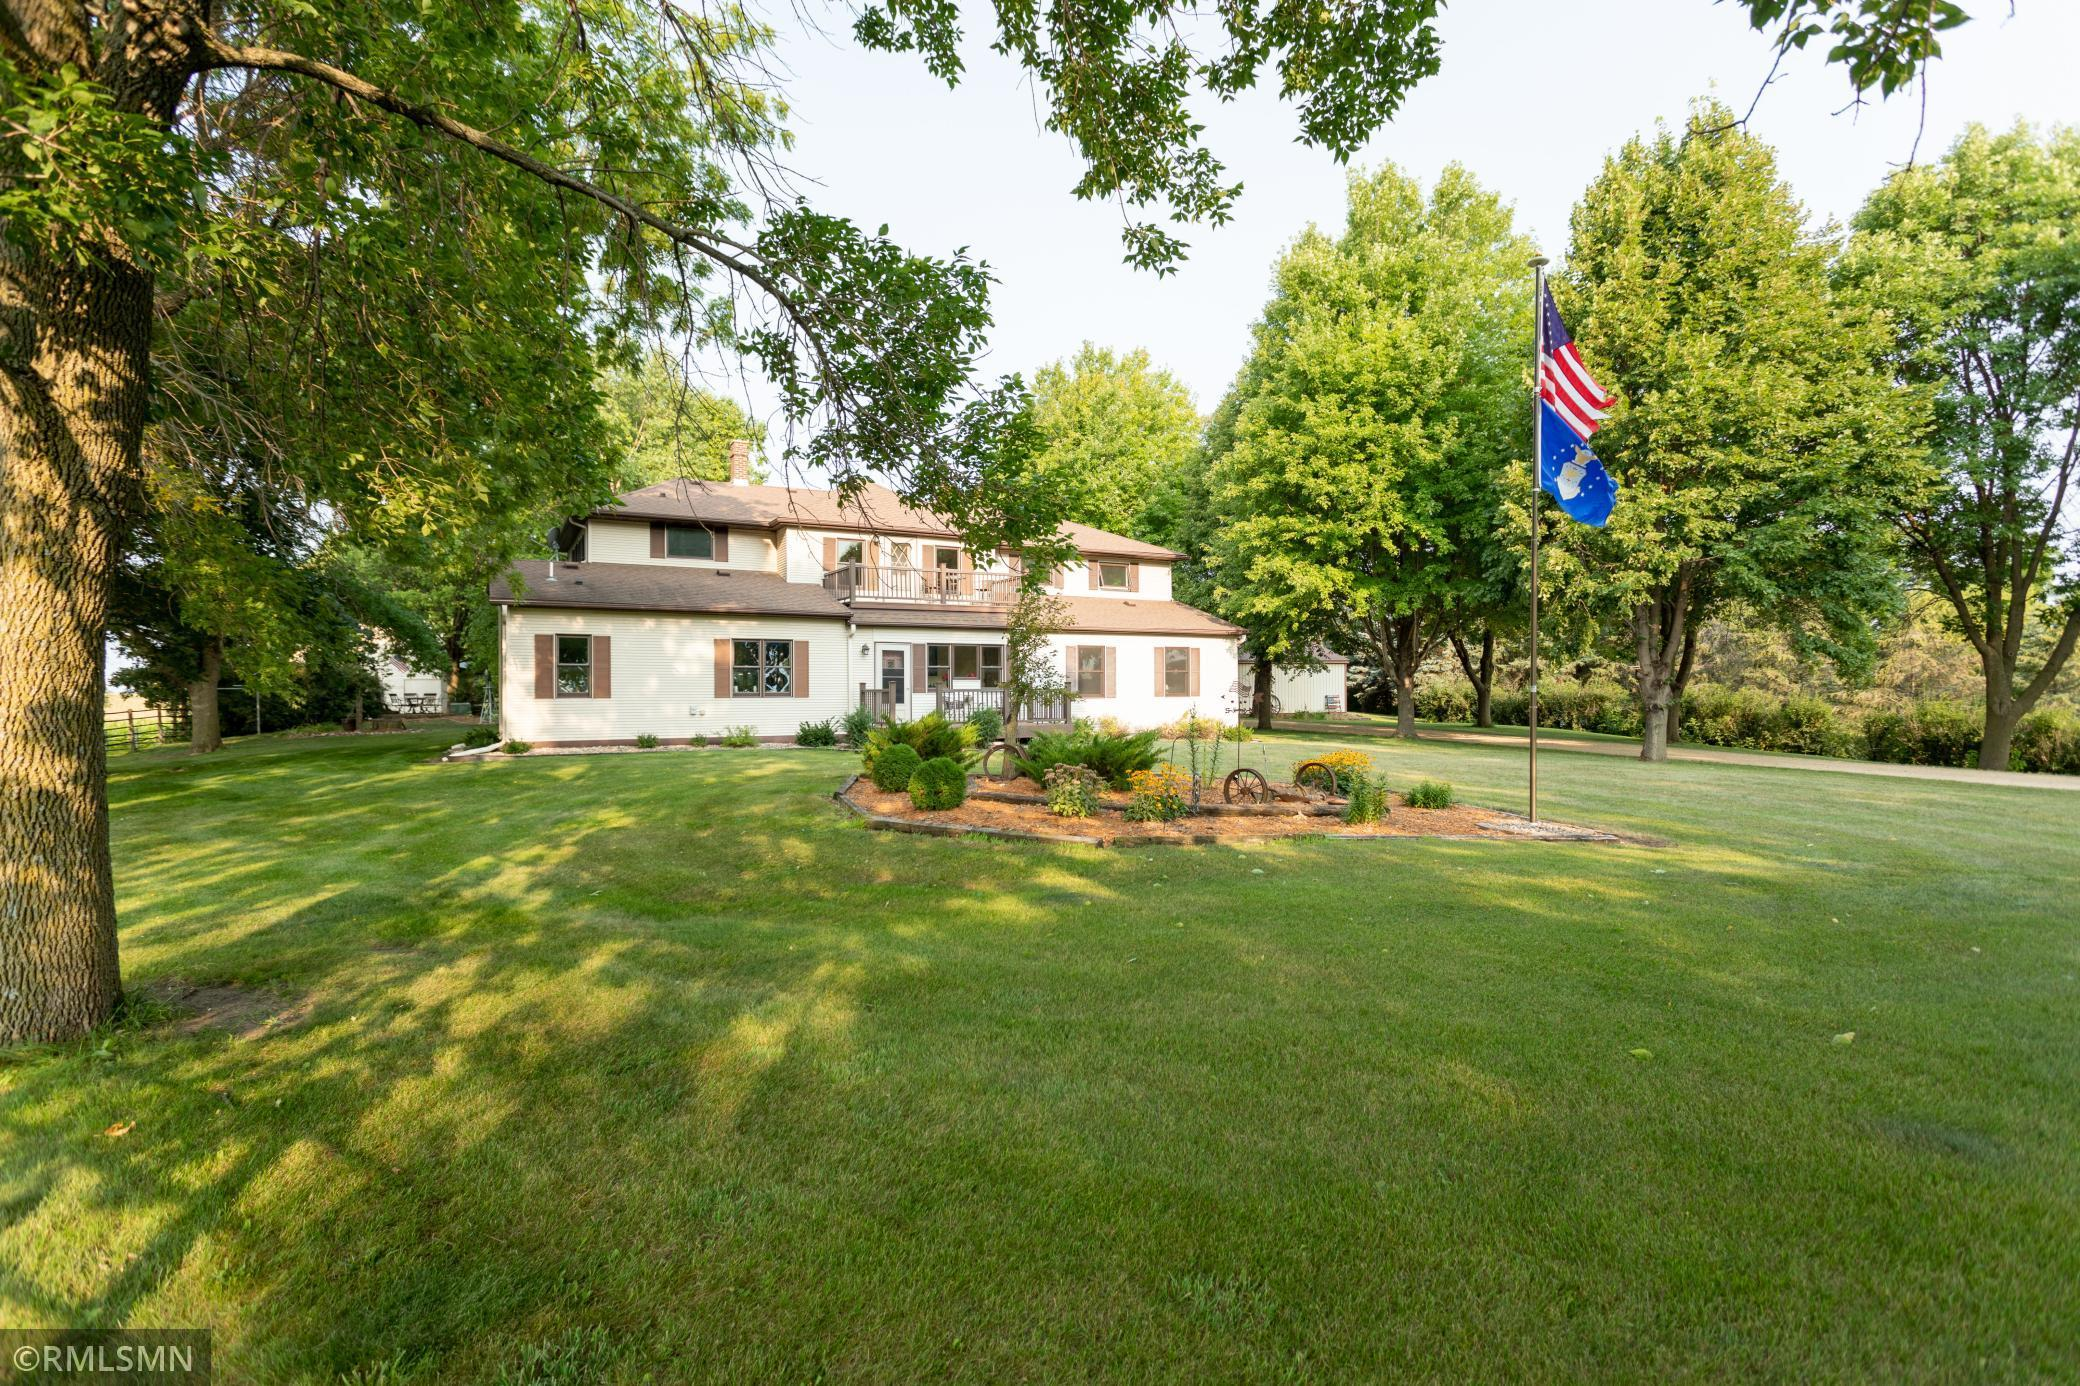 Time stands still as you enter the tree lined driveway showcasing an 18th century stately two story with a 20th century addition. Just seconds from city limits, the high school & college, off blacktop, you'll find this 6+ acre majestic property with an abundance of charm. Off to the south you'll find the Orchard filled w/fruit trees along w/5 rows of grapes. To the north, you'll find the owner's 100' shooting range, and ATV trails. As you enter into the property, in add'n to the 2-car attached heated garage is a 4-car detached heated garage w/epoxied floors & 220 AMP, a Quonset with 220 AMP, a heated workshop w/loft, a large pole shed and a corncrib equipped with dog kennels and chicken coops. Main level welcomes you into the Kitchen with Cambria countertops, pot filler over the gas stove and double ovens. Cozy up to a fireplace in the living room or enjoy the 4-season porch w/fireplace. A primary bedroom like no other, with ht'd bathroom & shower floor, 2 vanity, and 2 closets.